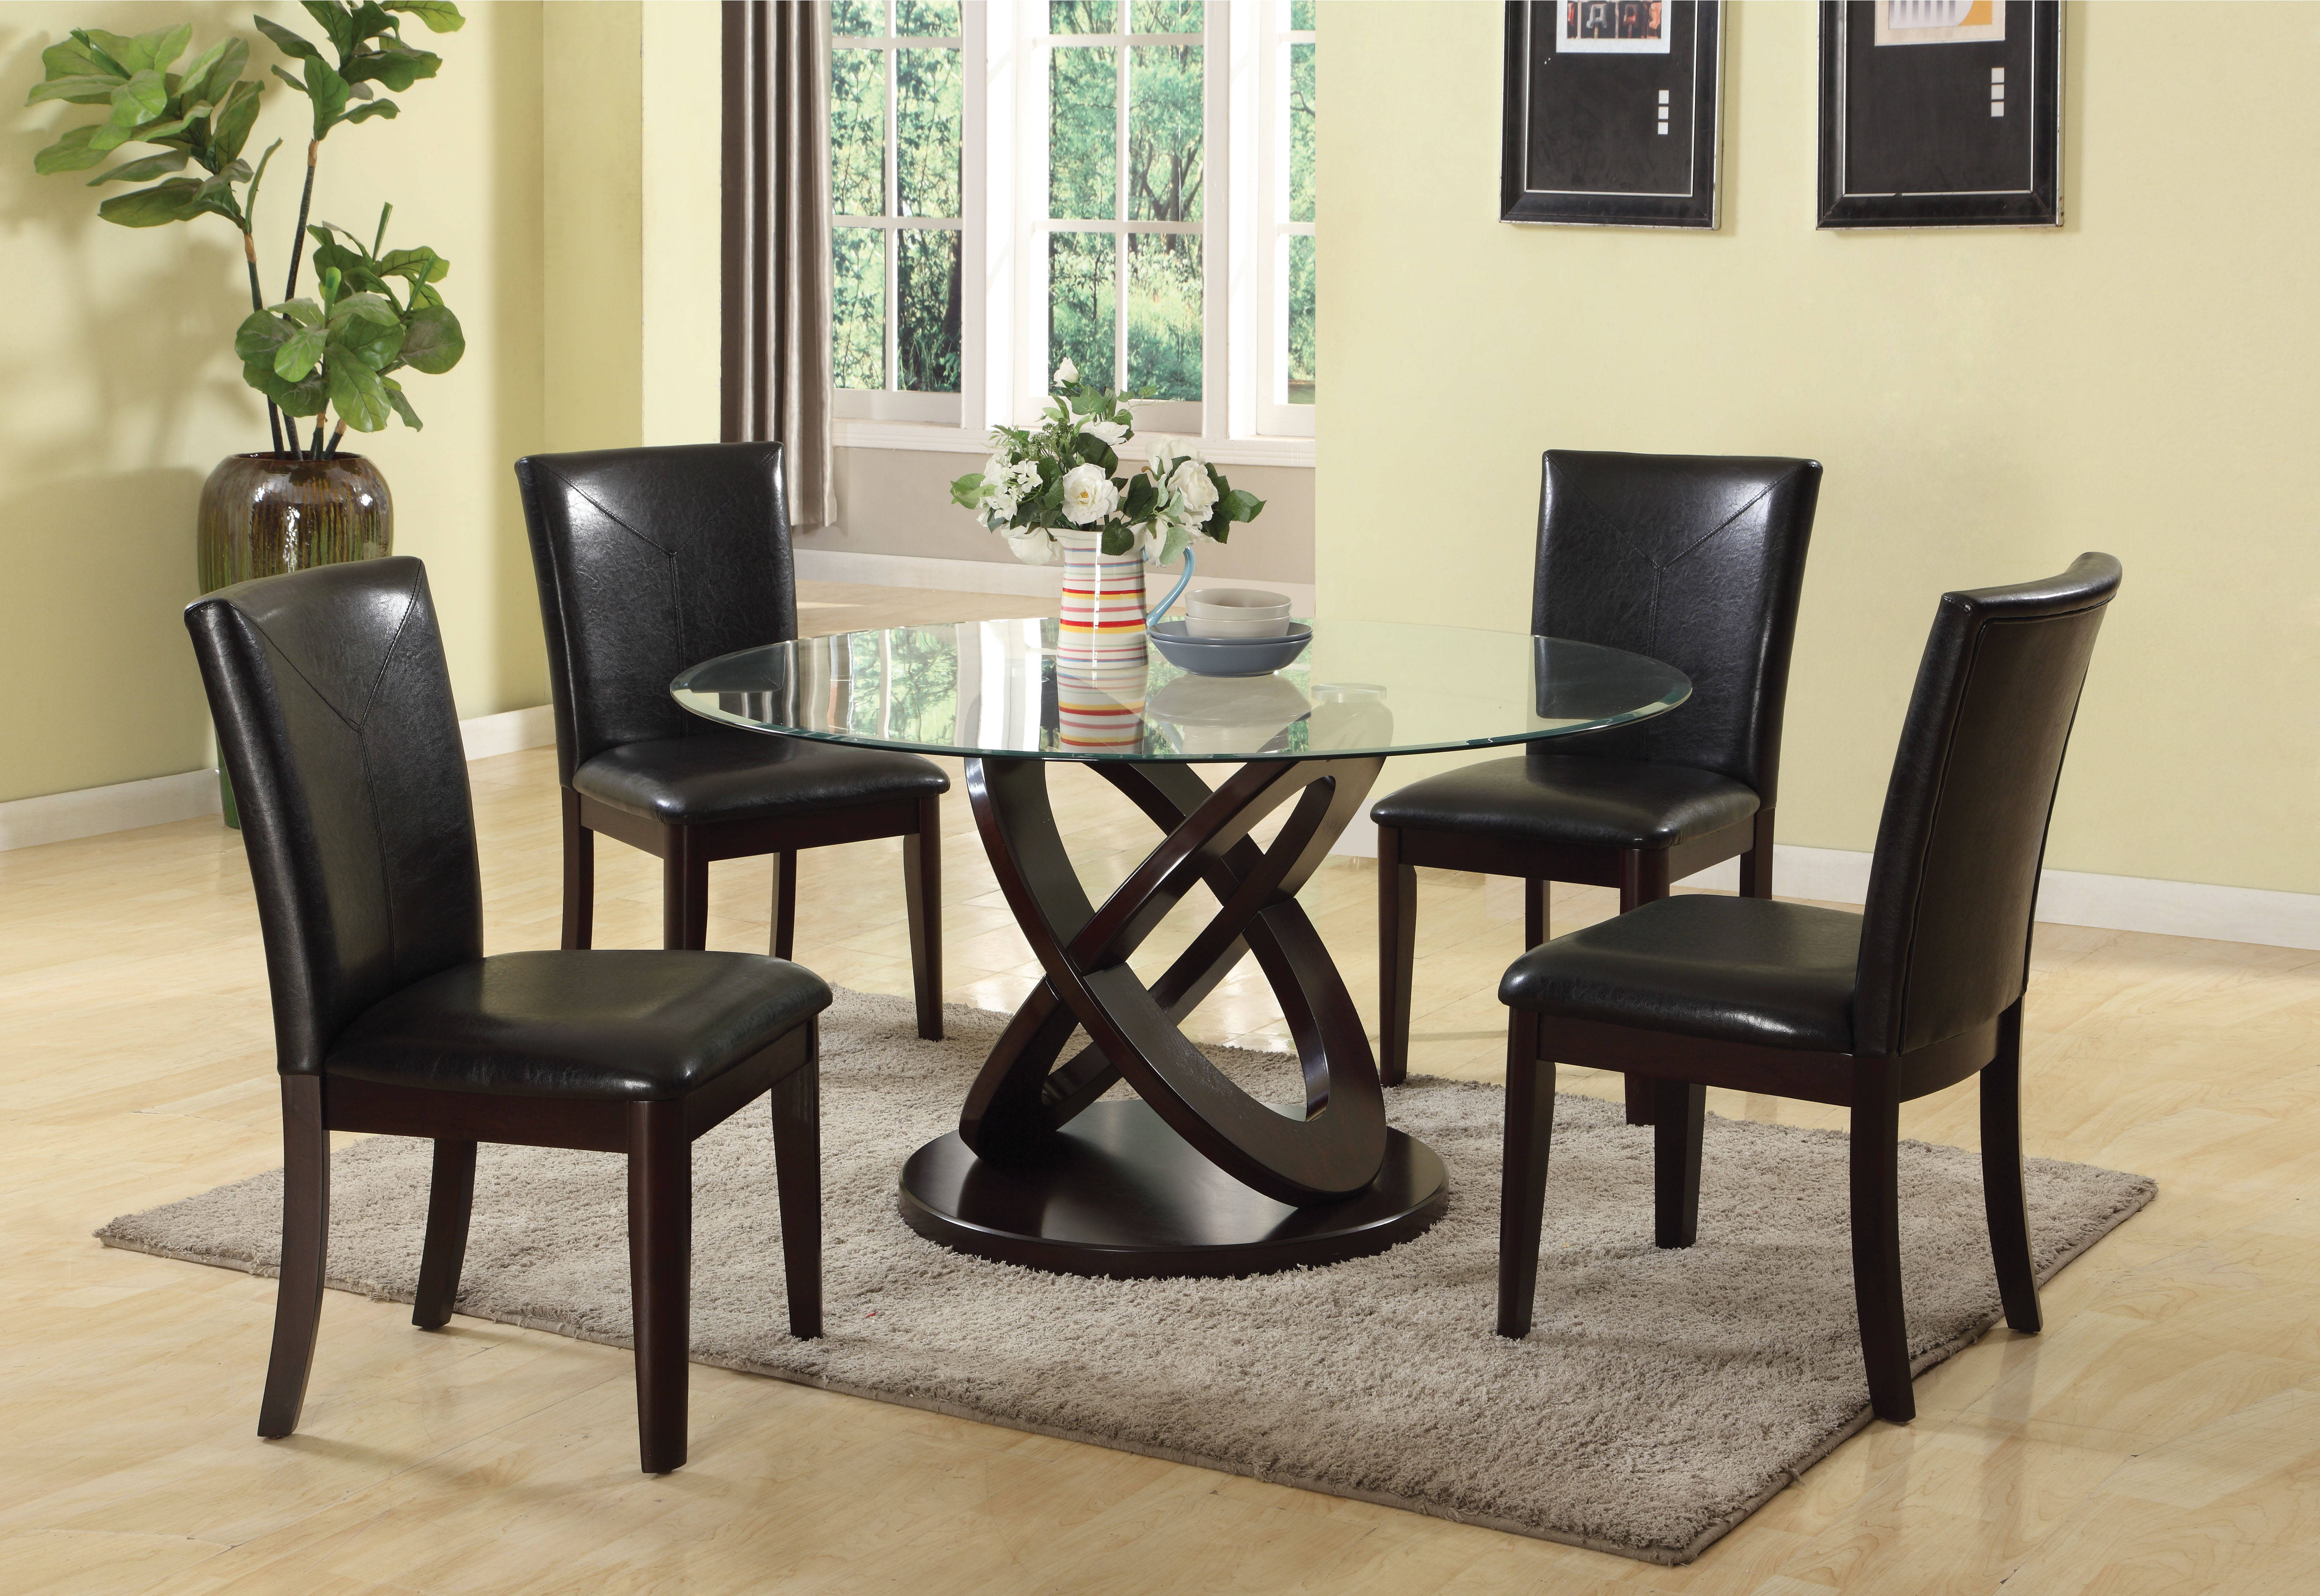 Acme Furniture Gable Espresso Dining Room Set The Classy